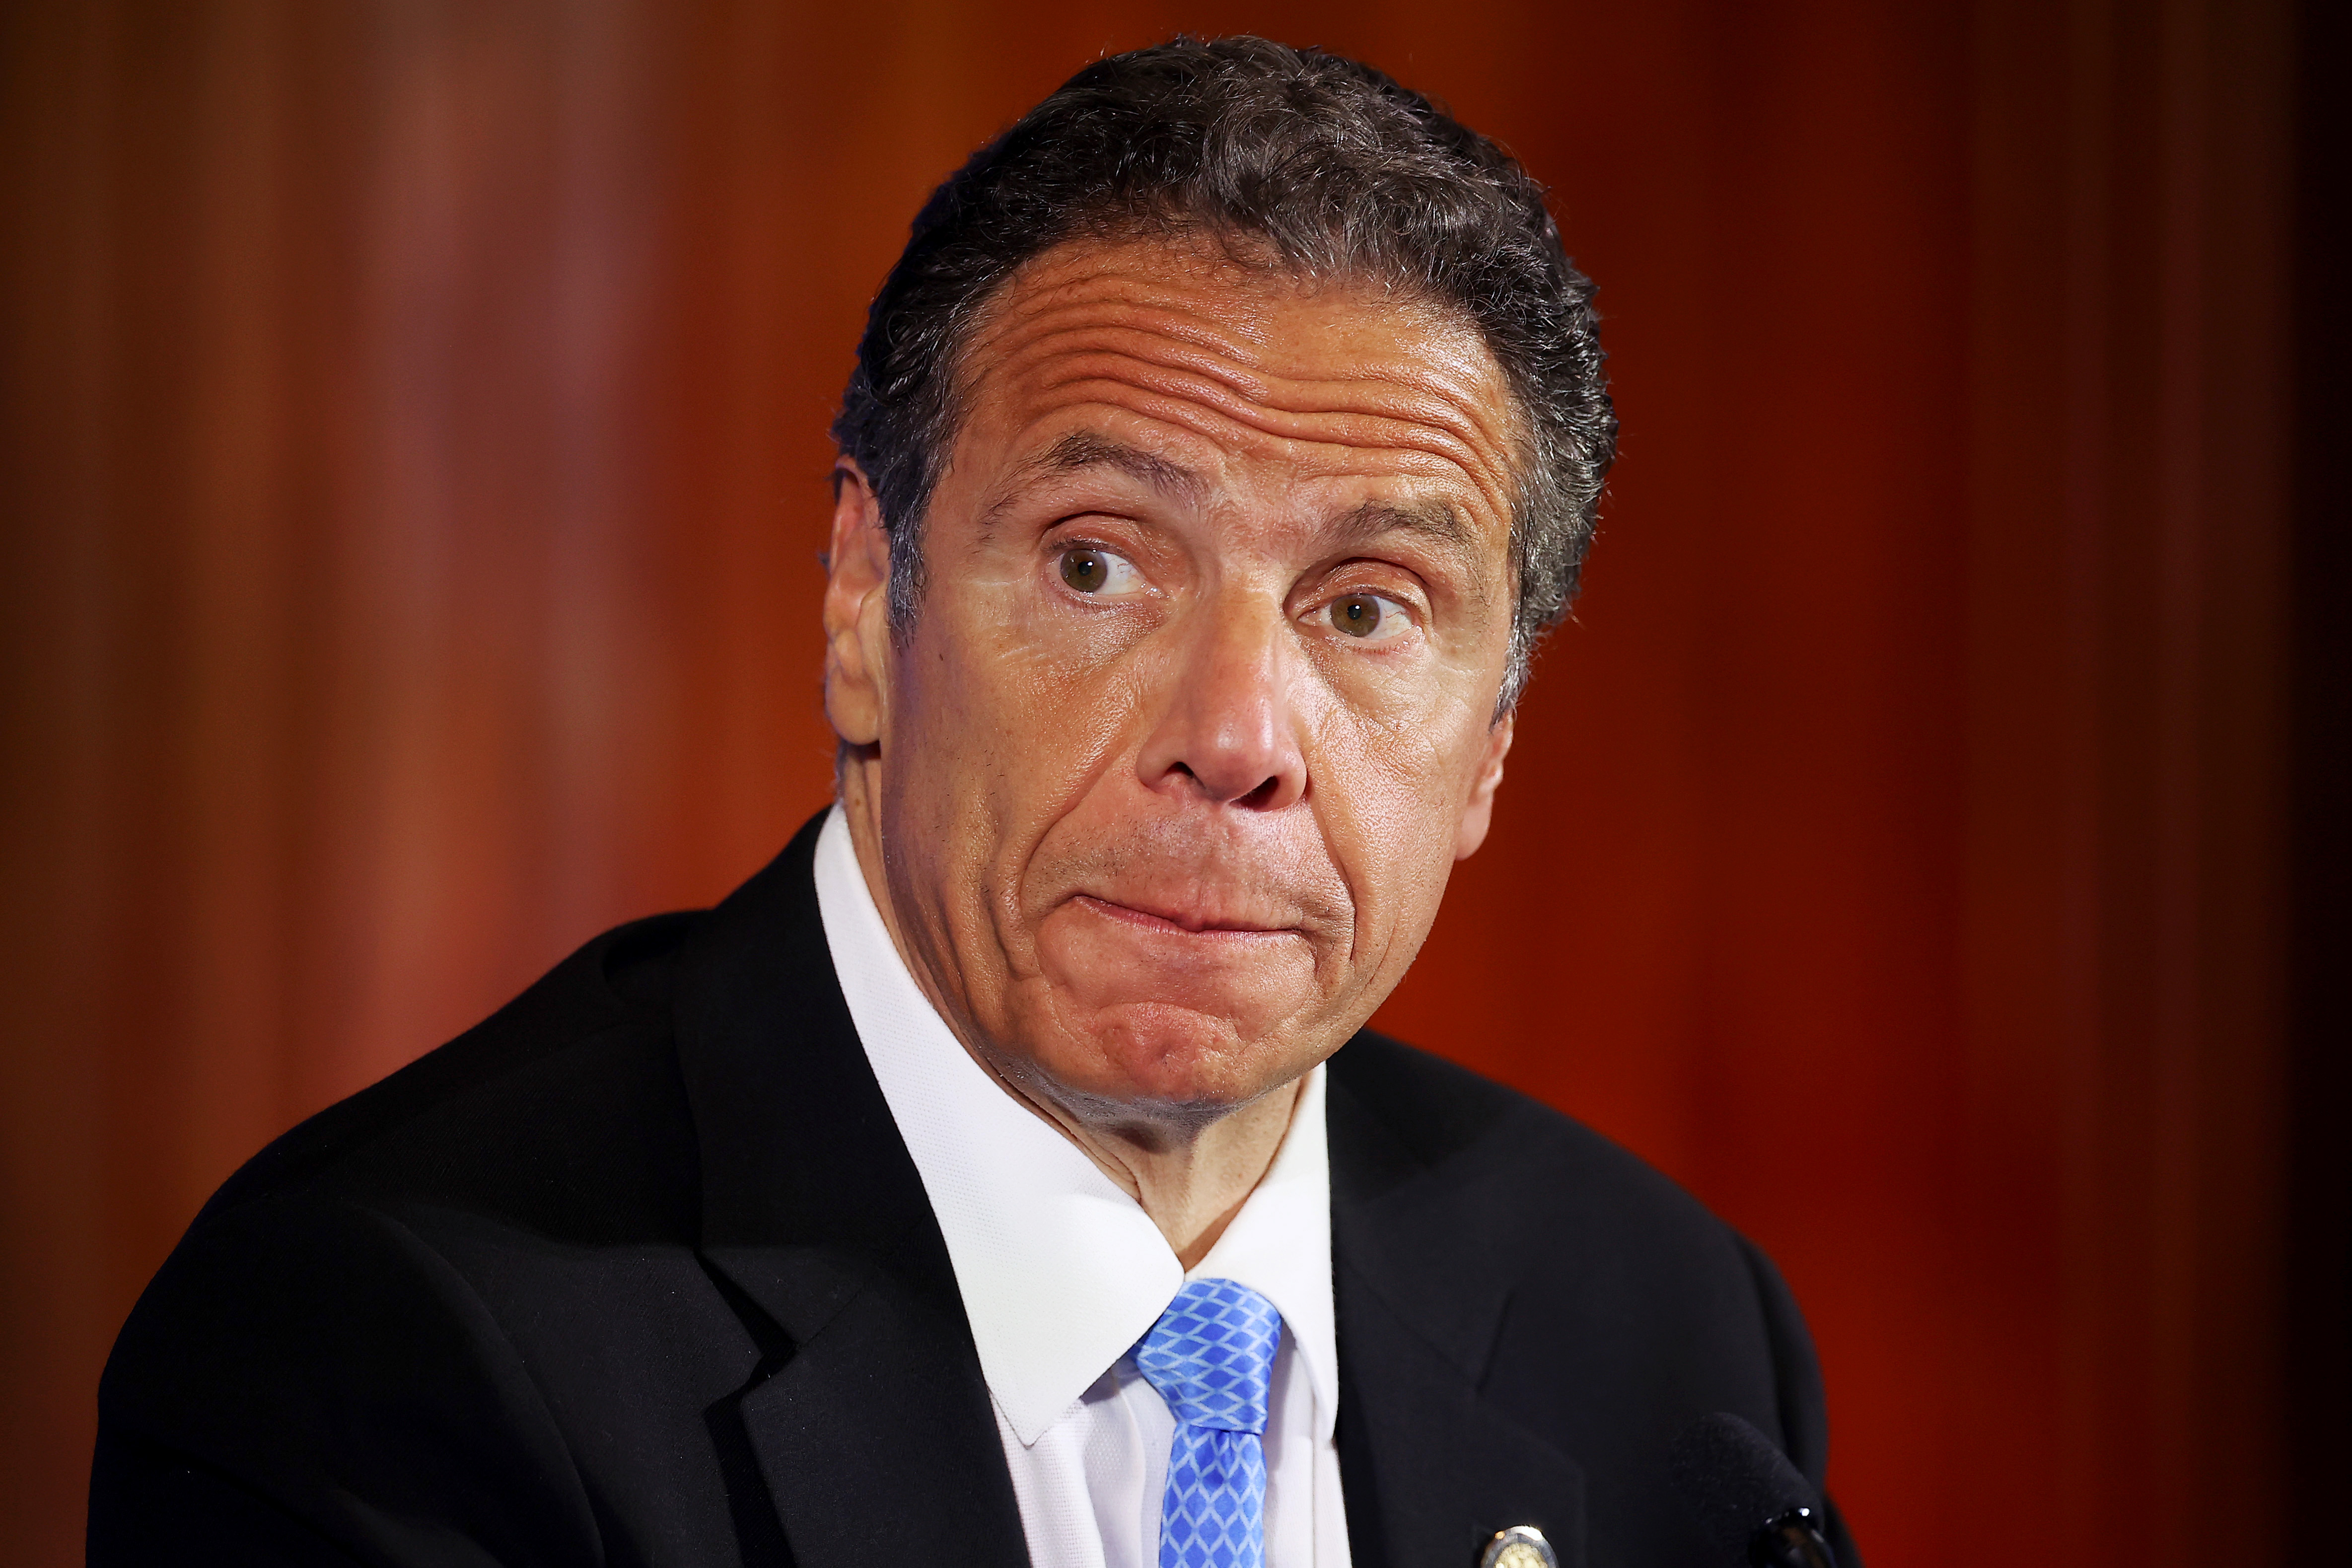 'Pattern of inappropriate conduct': The 10 most explosive excerpts from the Cuomo report